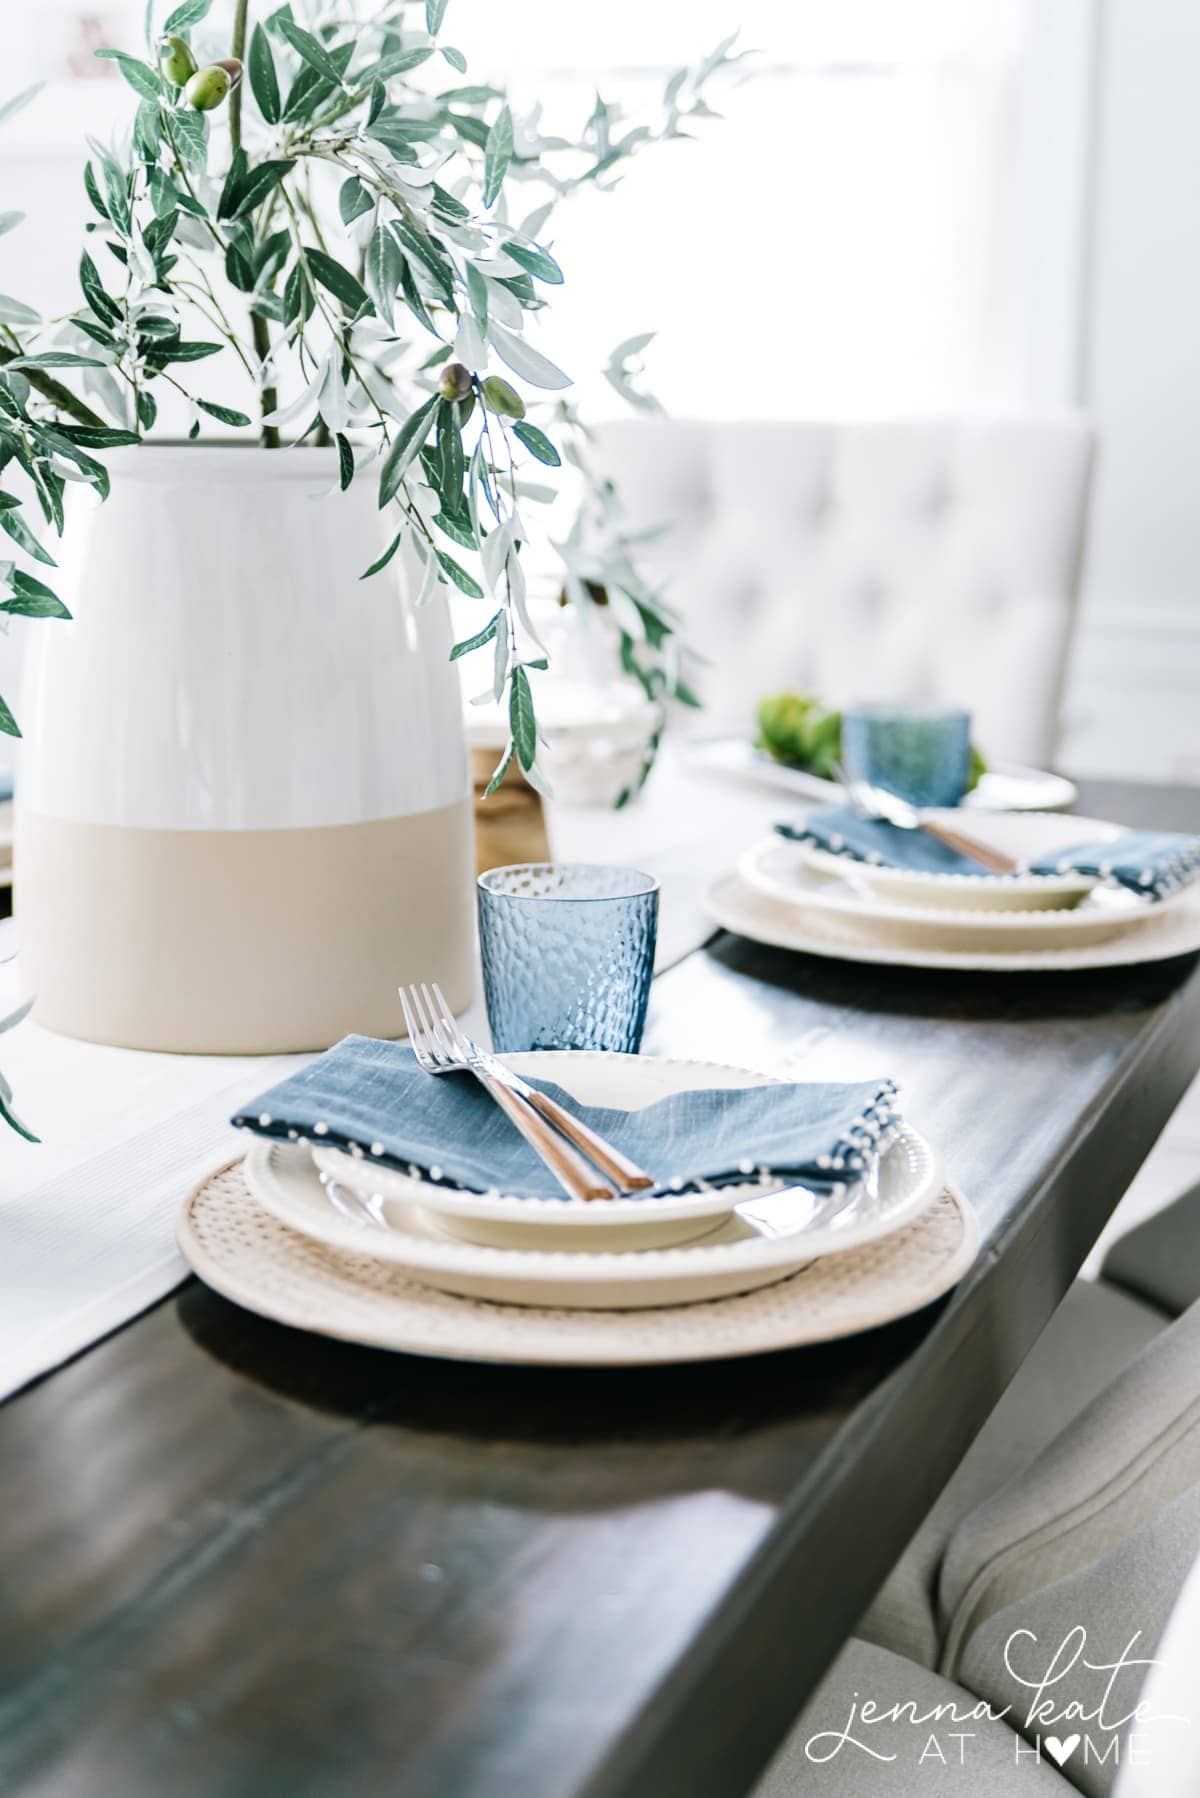 I love the light coastal blue color of these linen napkins and glassware. They add the perfect pops of color